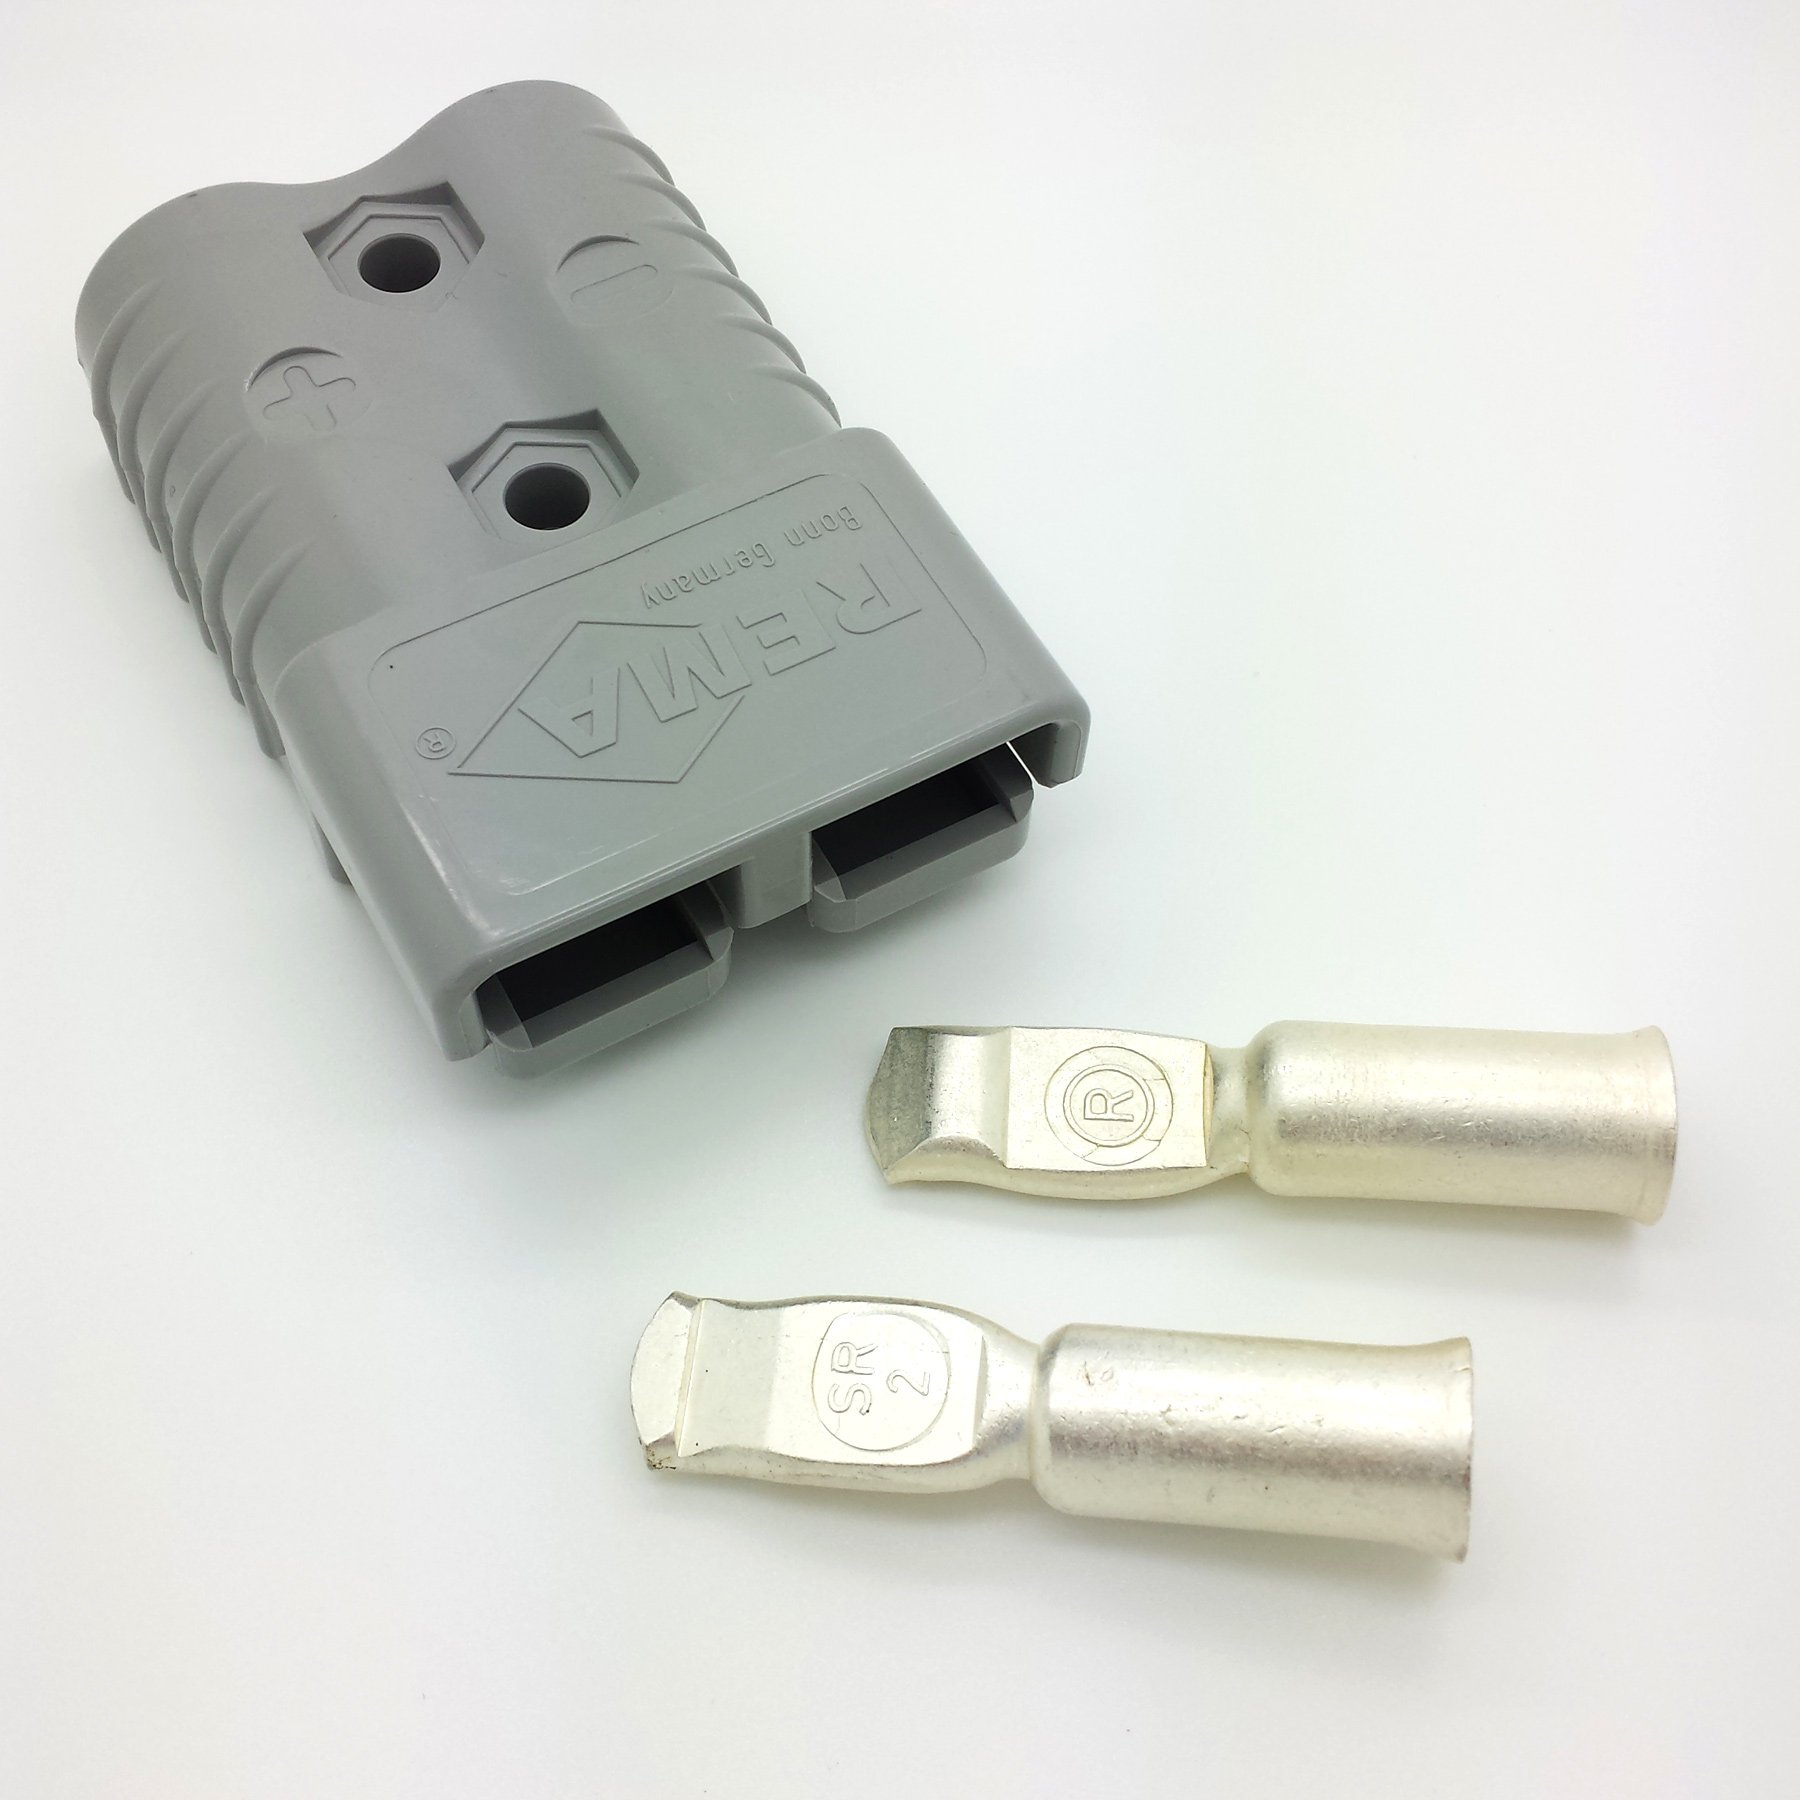 175 Amp grey 36V connector with AWG 2 contacts, Max. 600V/175A, Sold by OEM Xpress